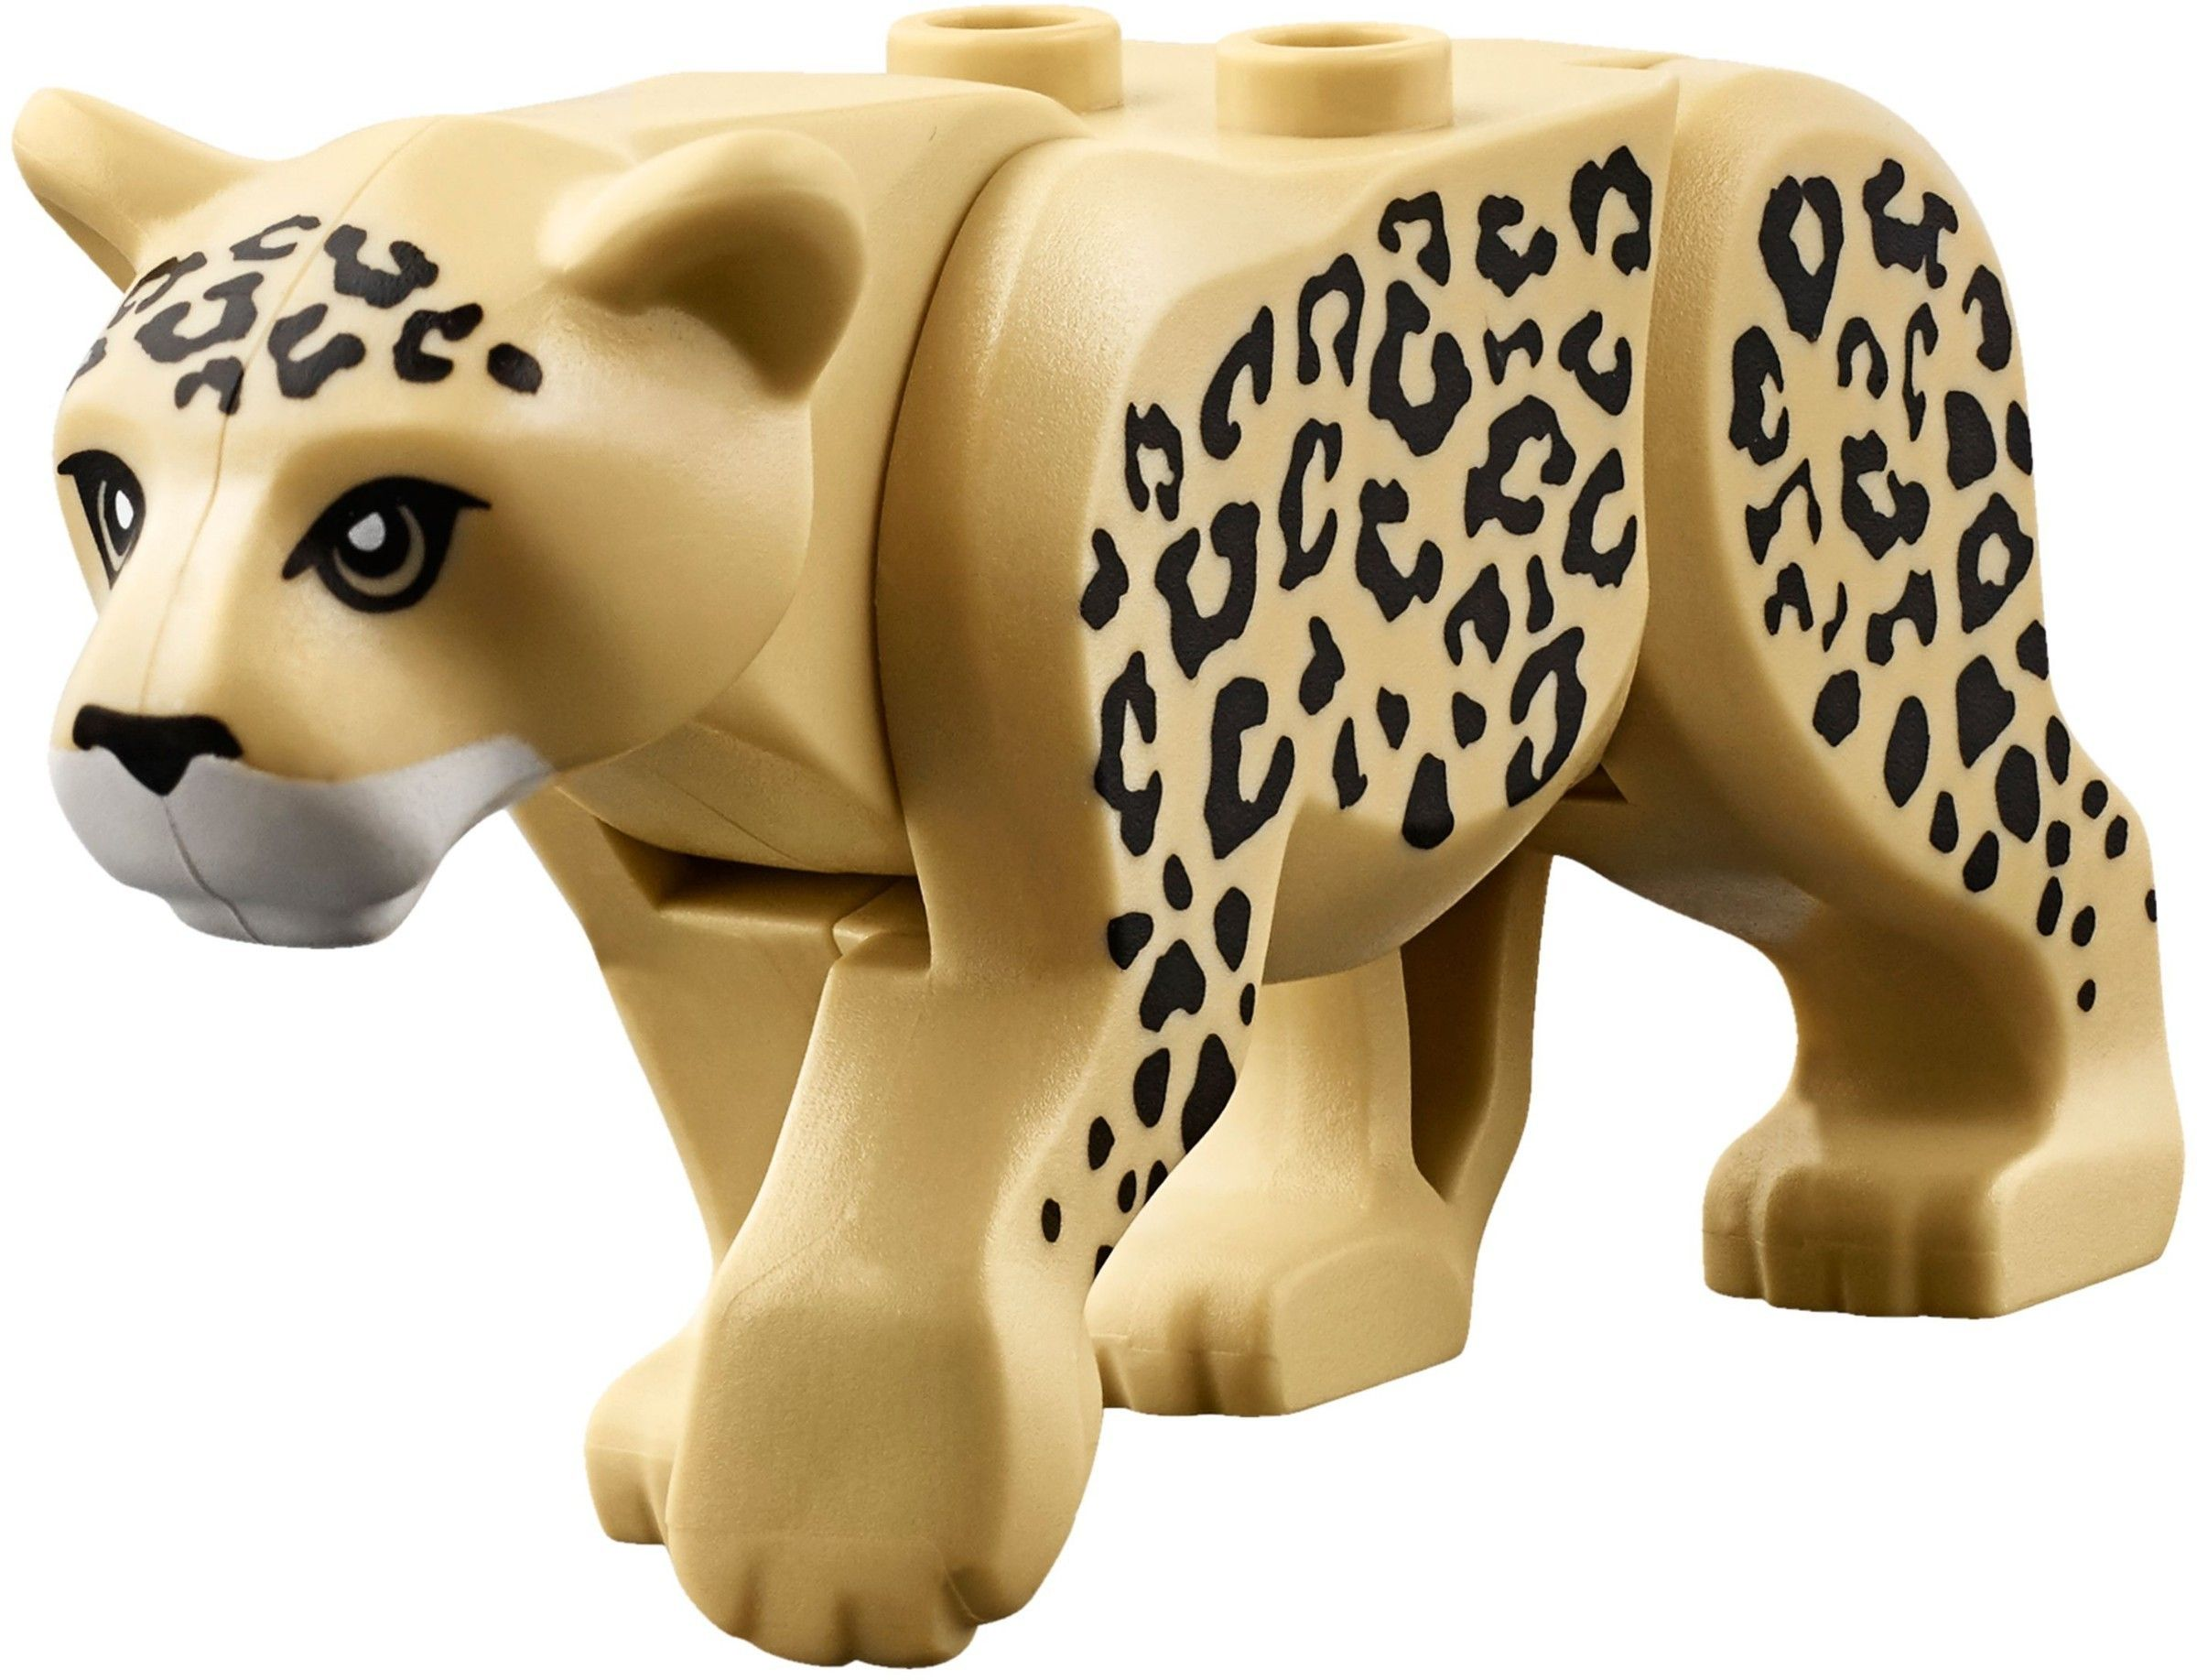 Pin lego 60032 city the lego summer wave in official images on - Leopard 2017 Leopardslego Animals